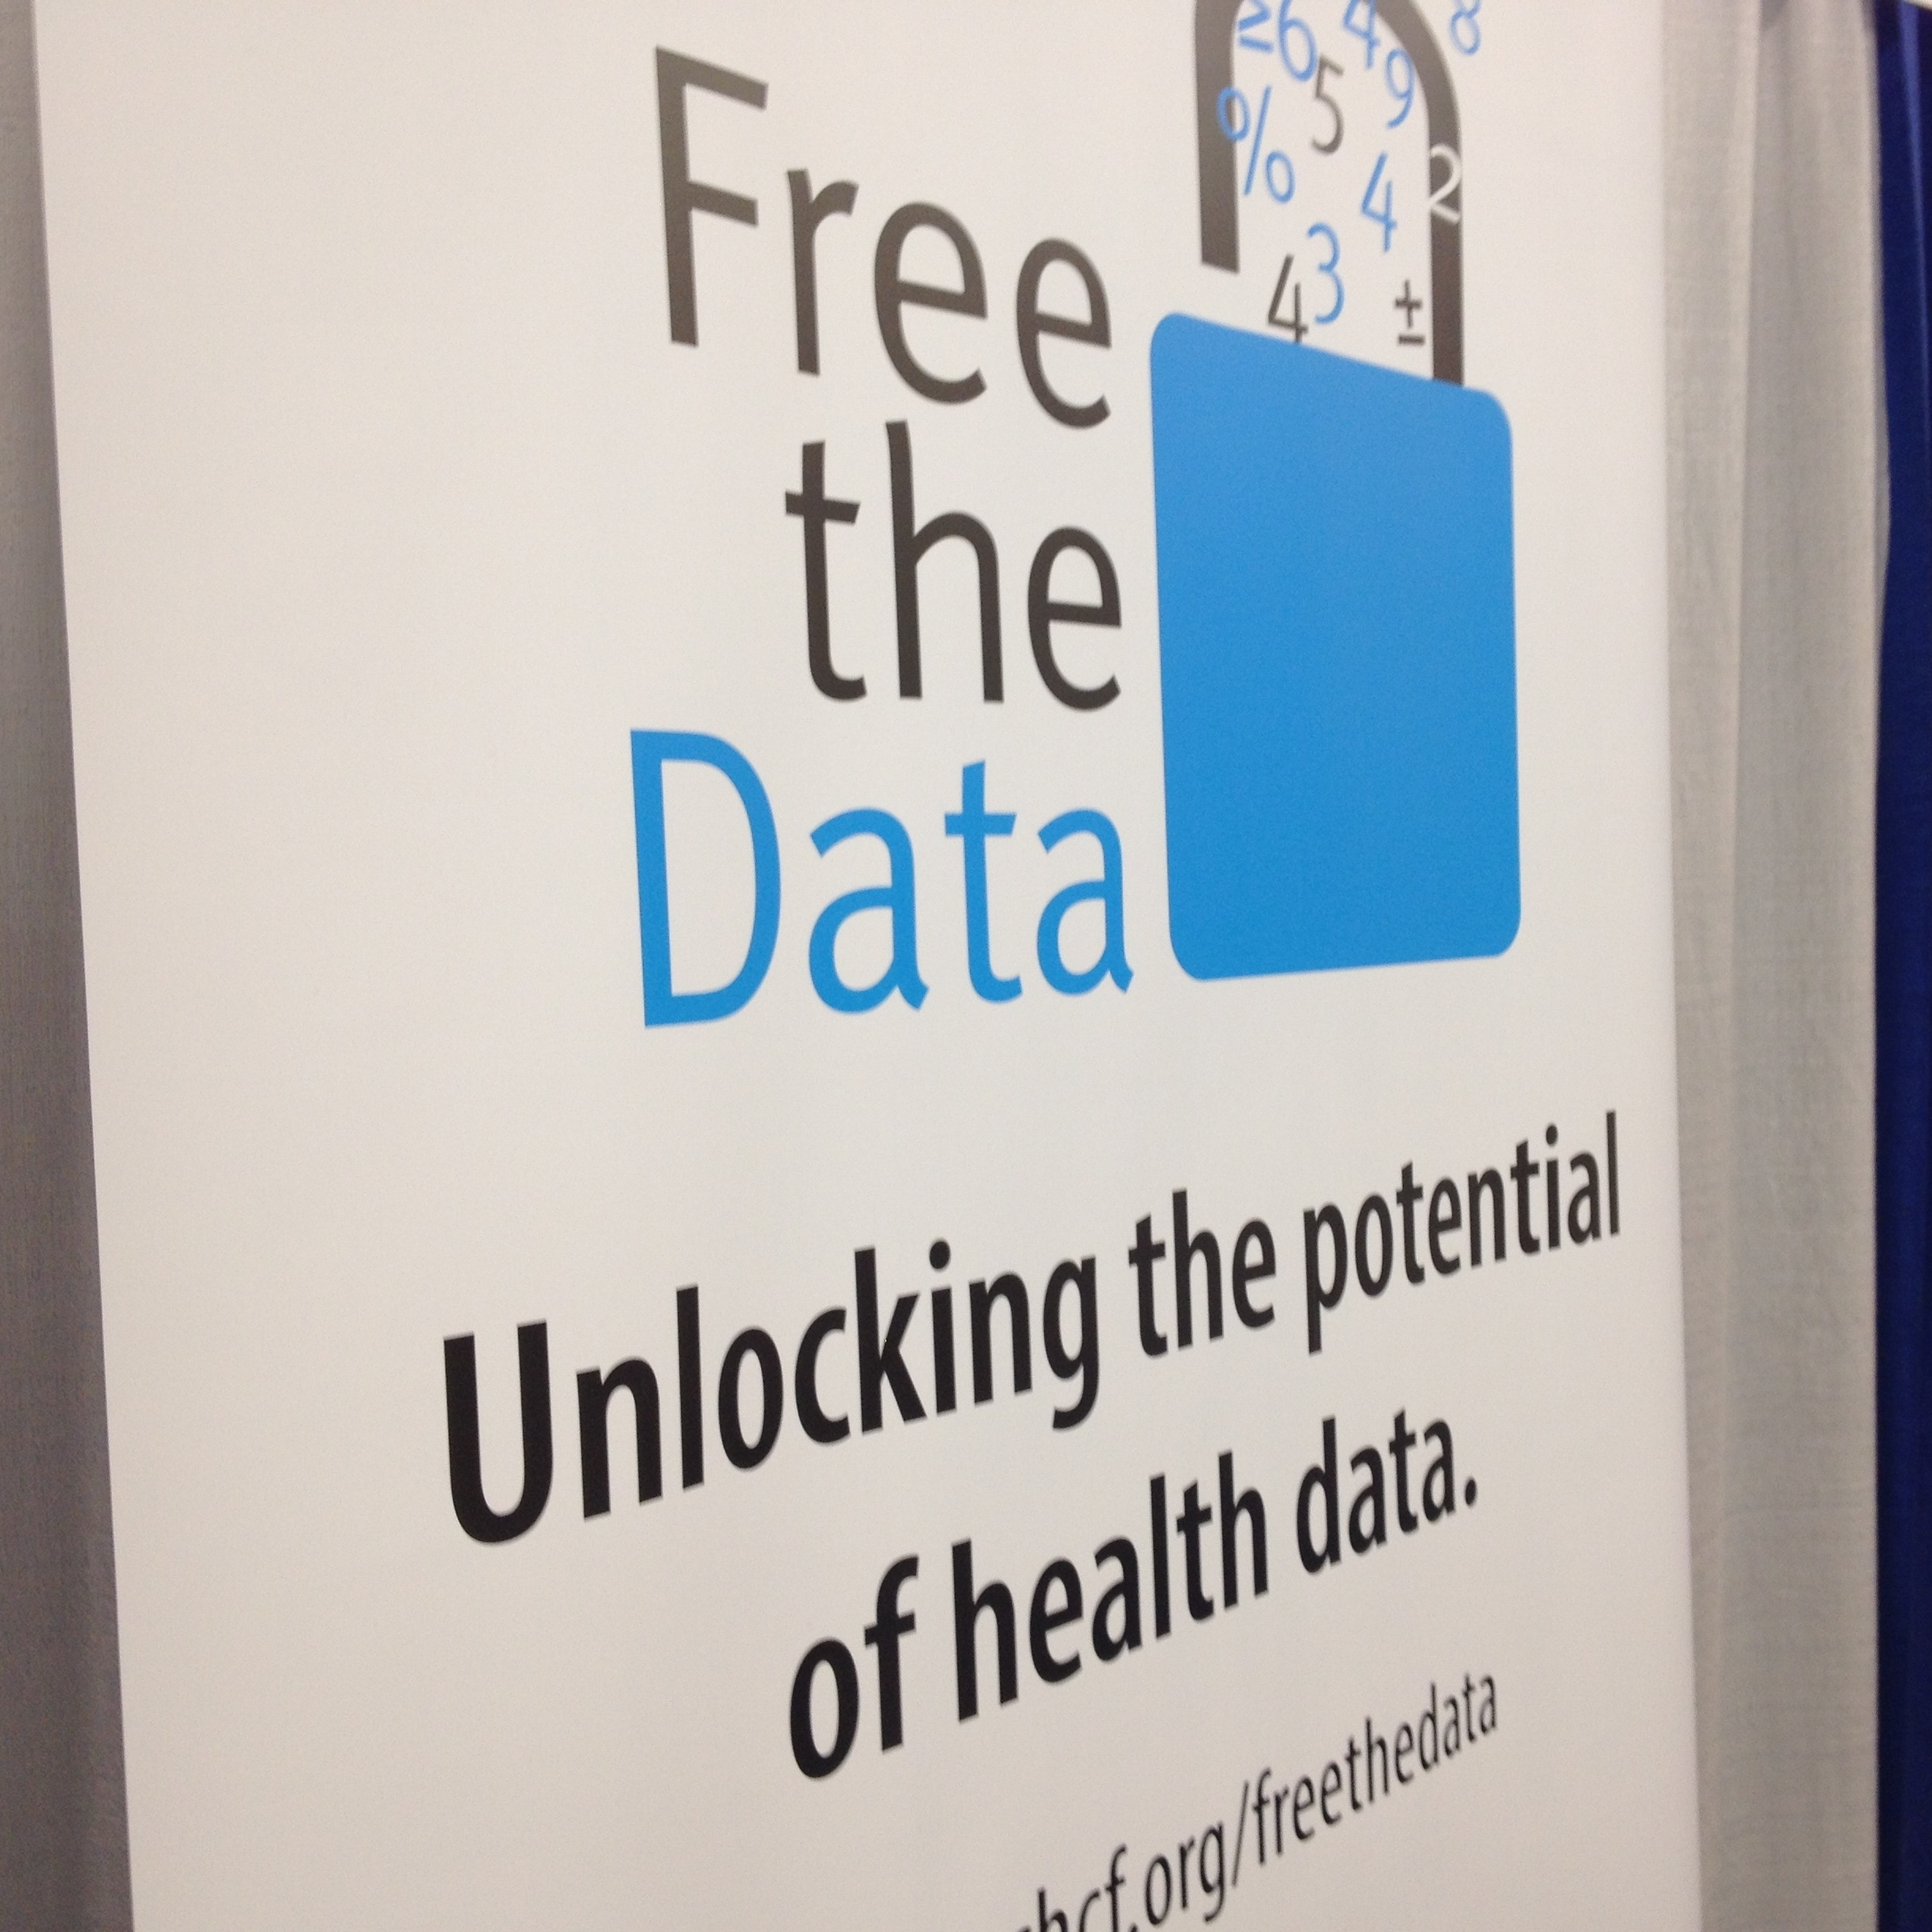 The California Health Care Foundation is lobbying for improved access to health data in the public domain.